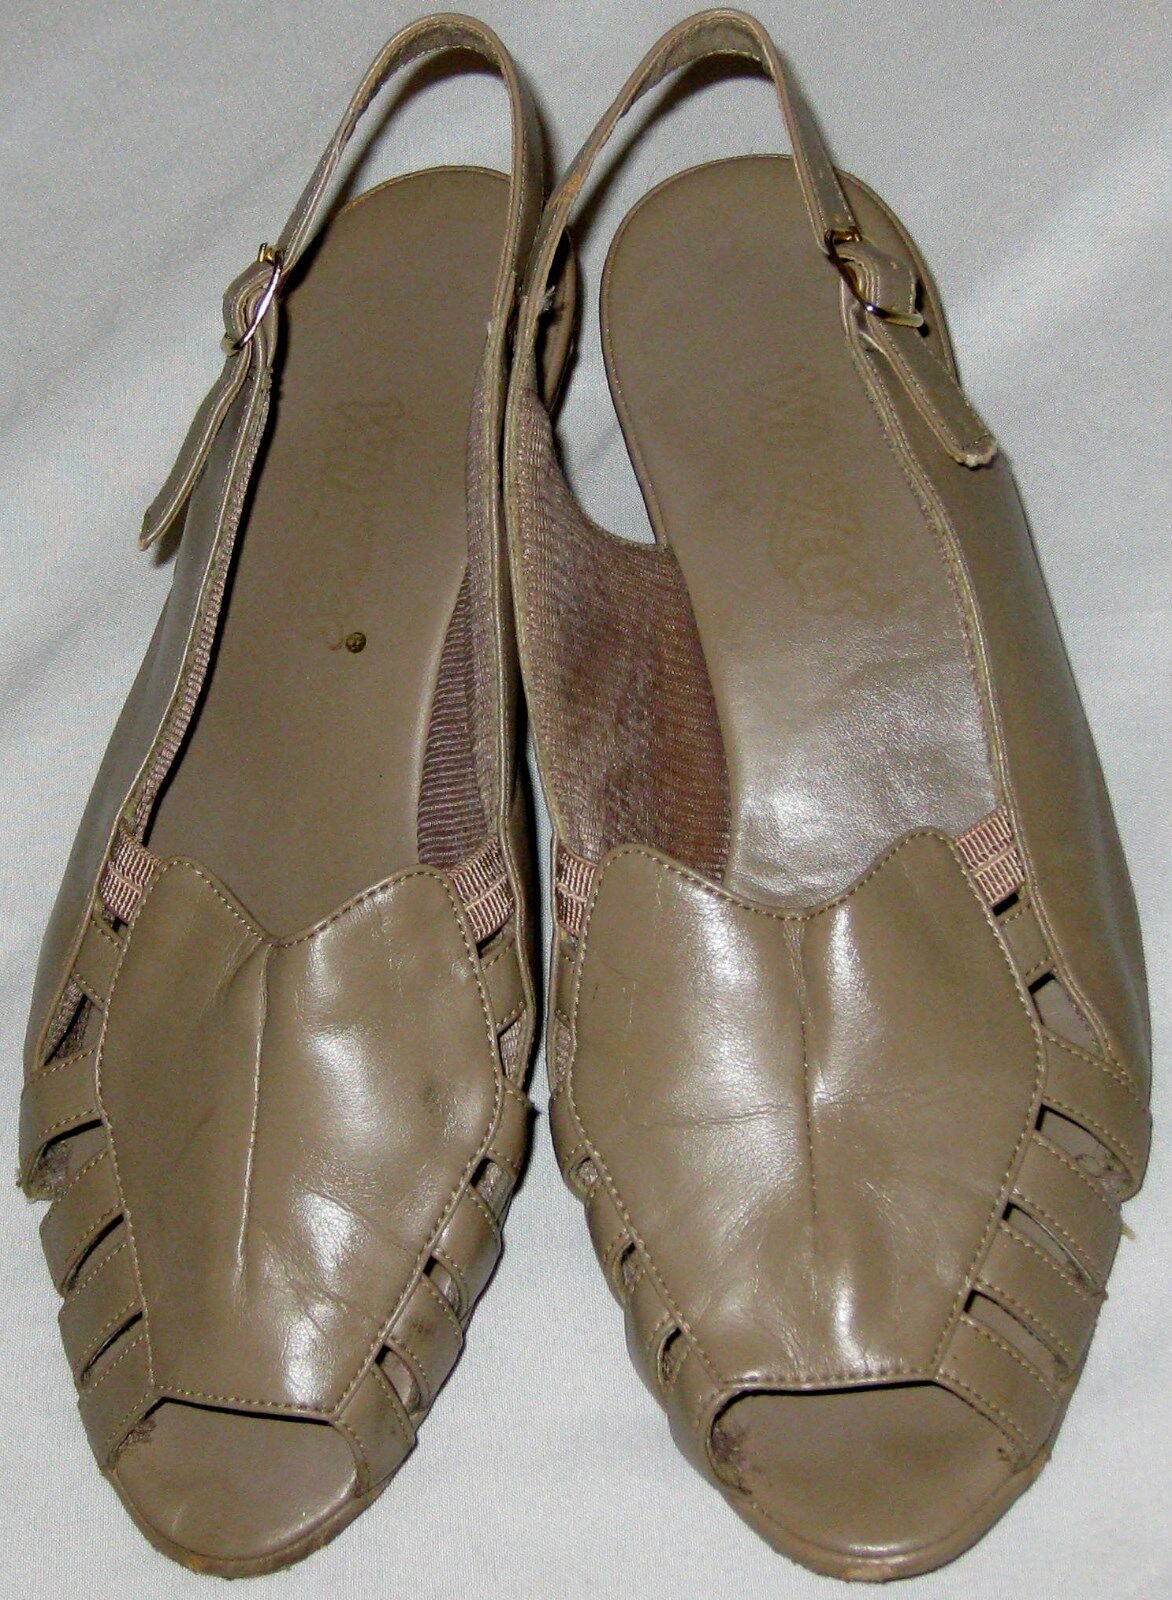 Taupe Brown Leather M Upper Wimzees 7 1/2 M Leather Womans Sandal Shoes 5d3a6b